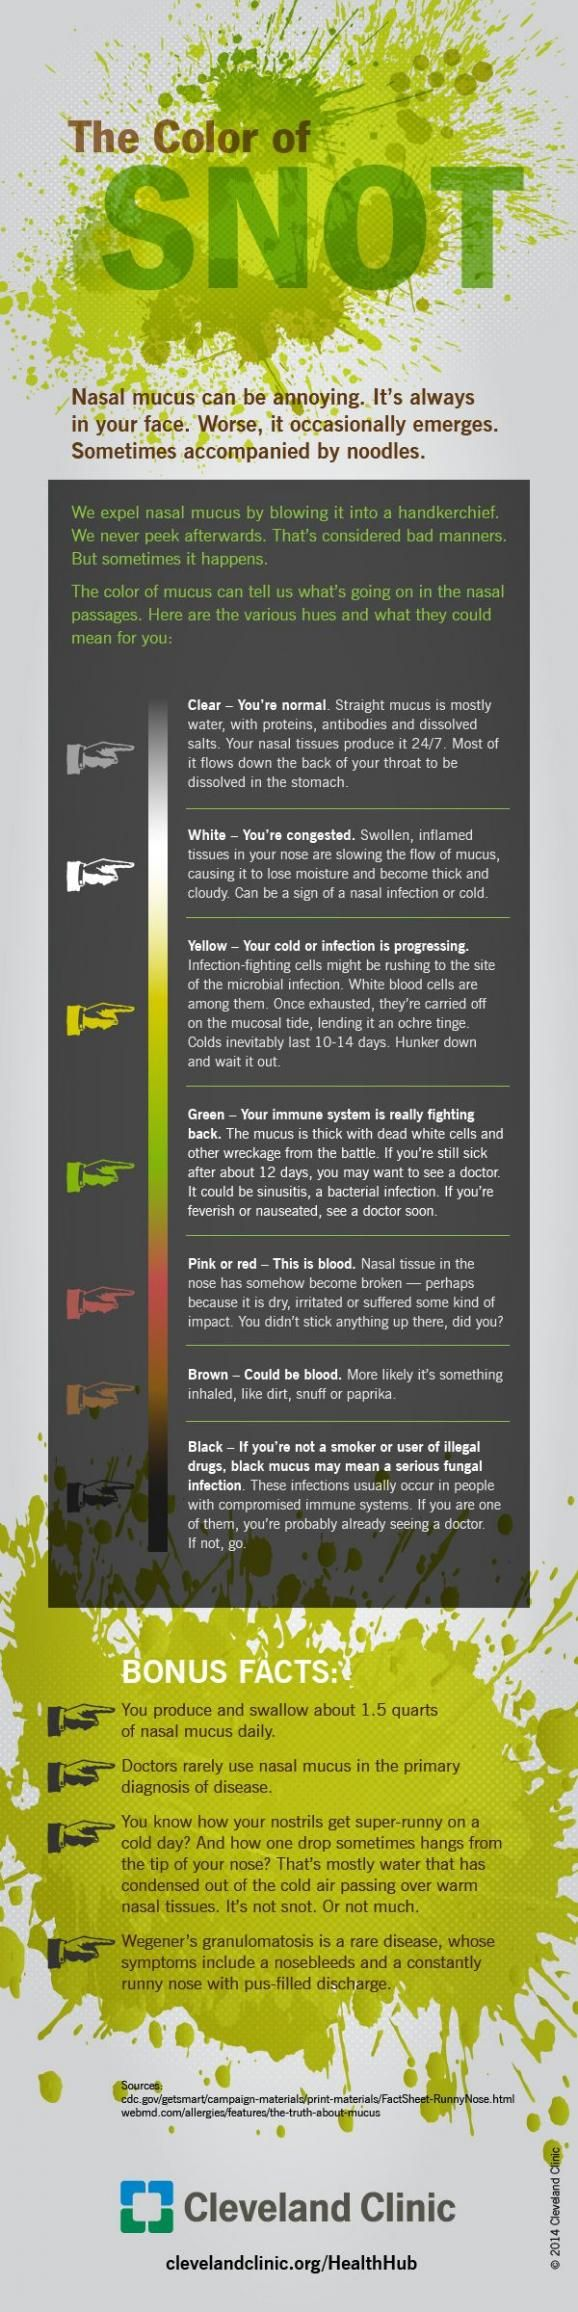 The color of snot infographic sciencedump so necessary yuall